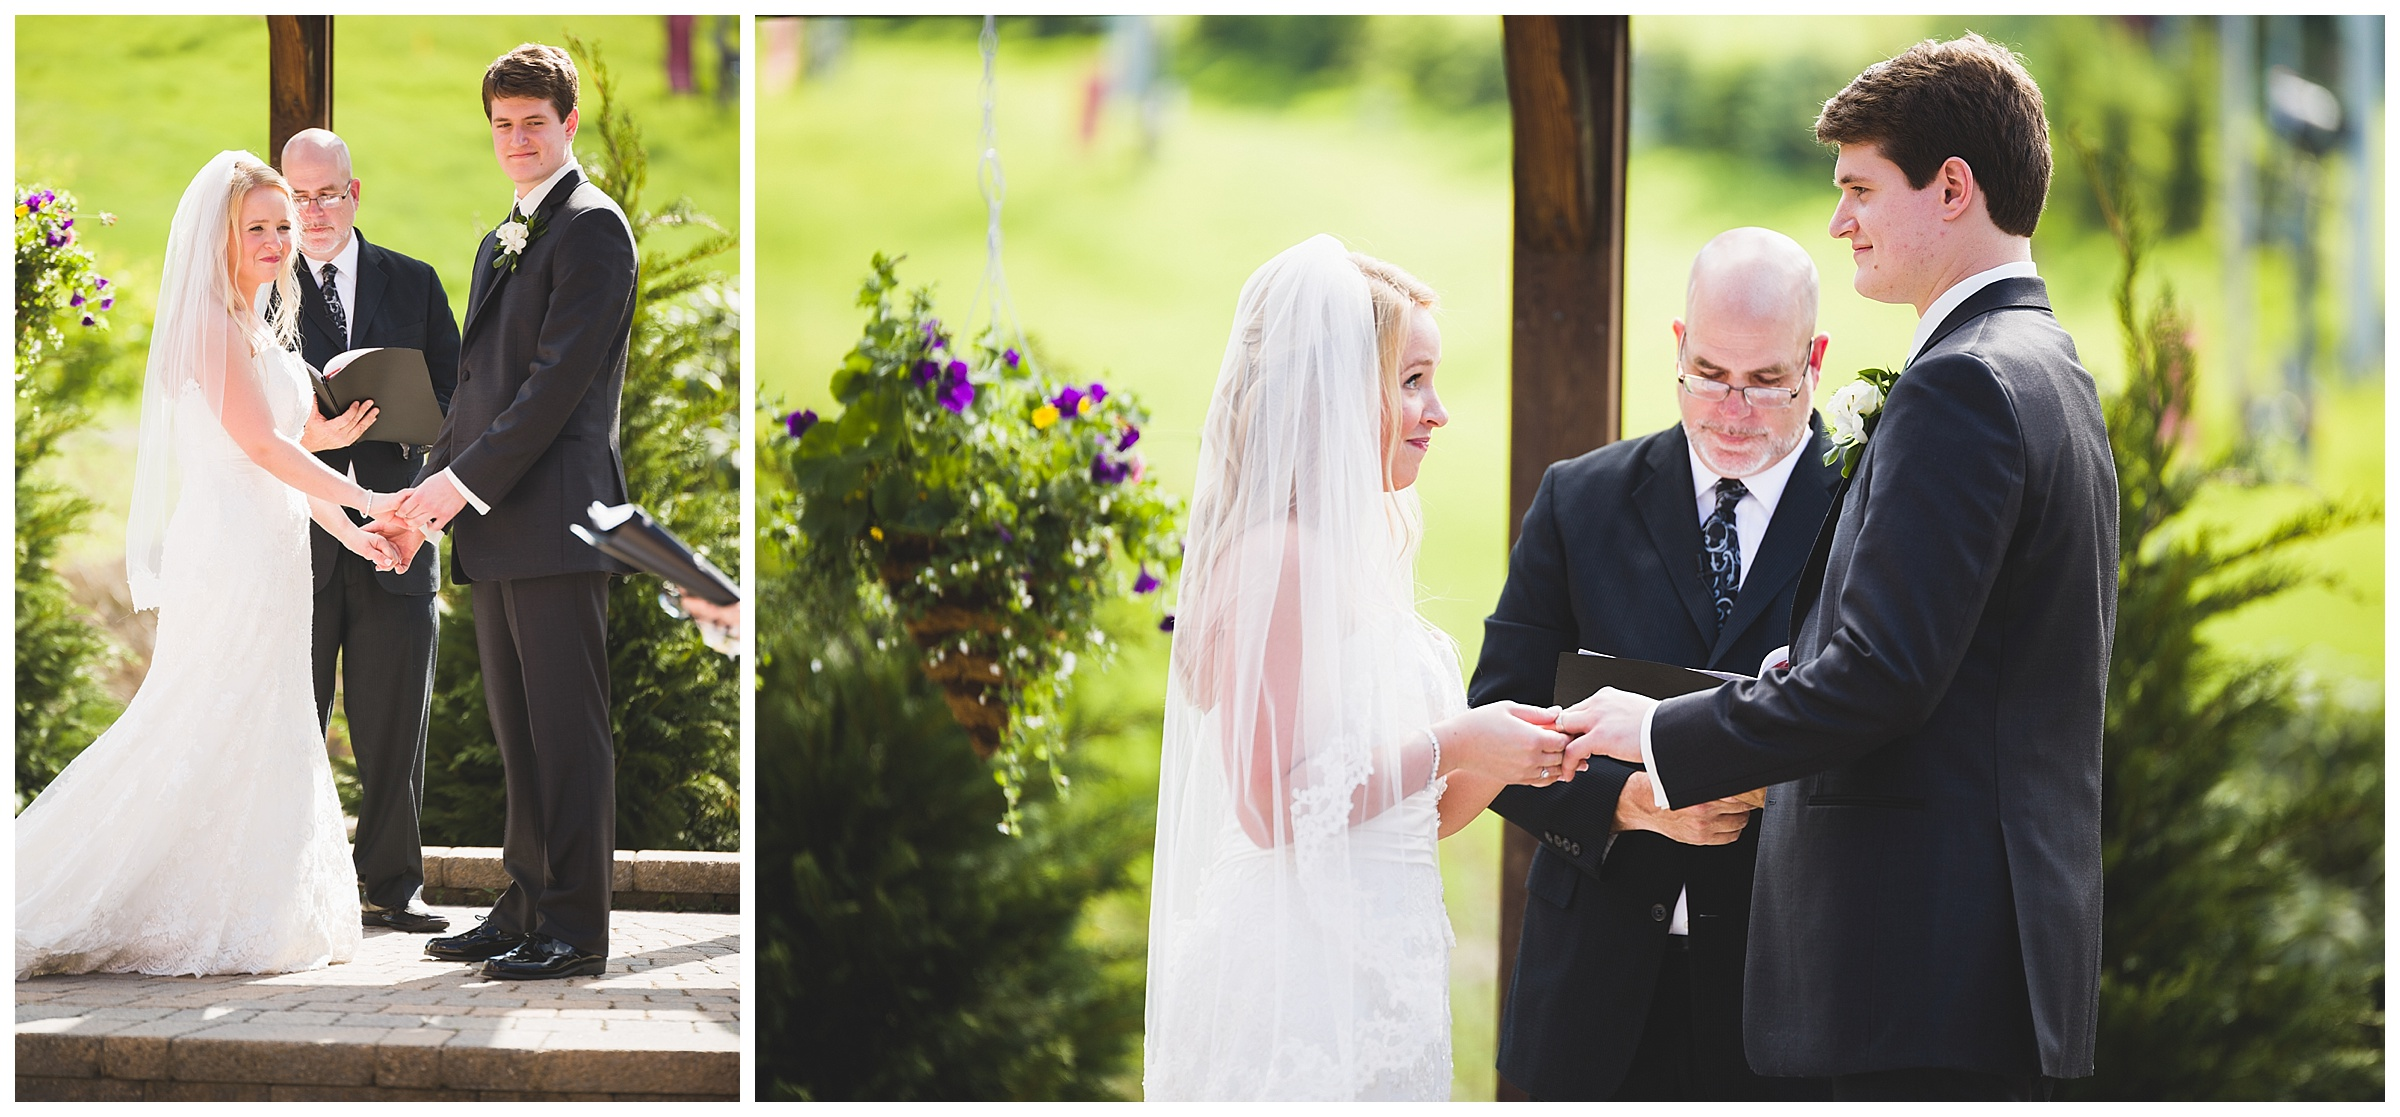 0044_Kelly and Josh's Wedding, Bear Creek Resort, PA_0044